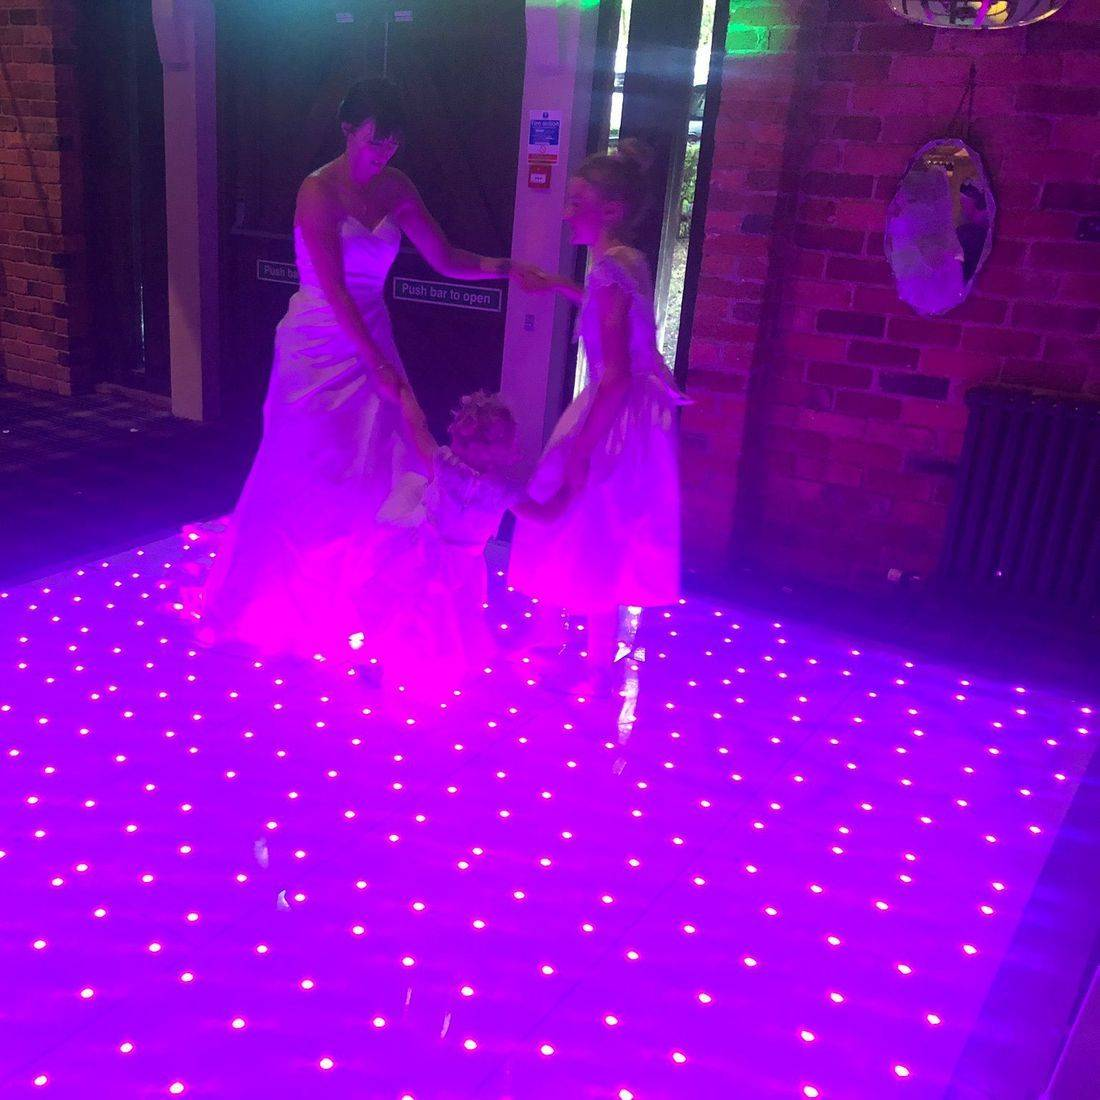 The Bell at Belbroughton #Worcesterhsire #wedding #dj #weddingentertainment #barn #barnwedding #leddancefloor